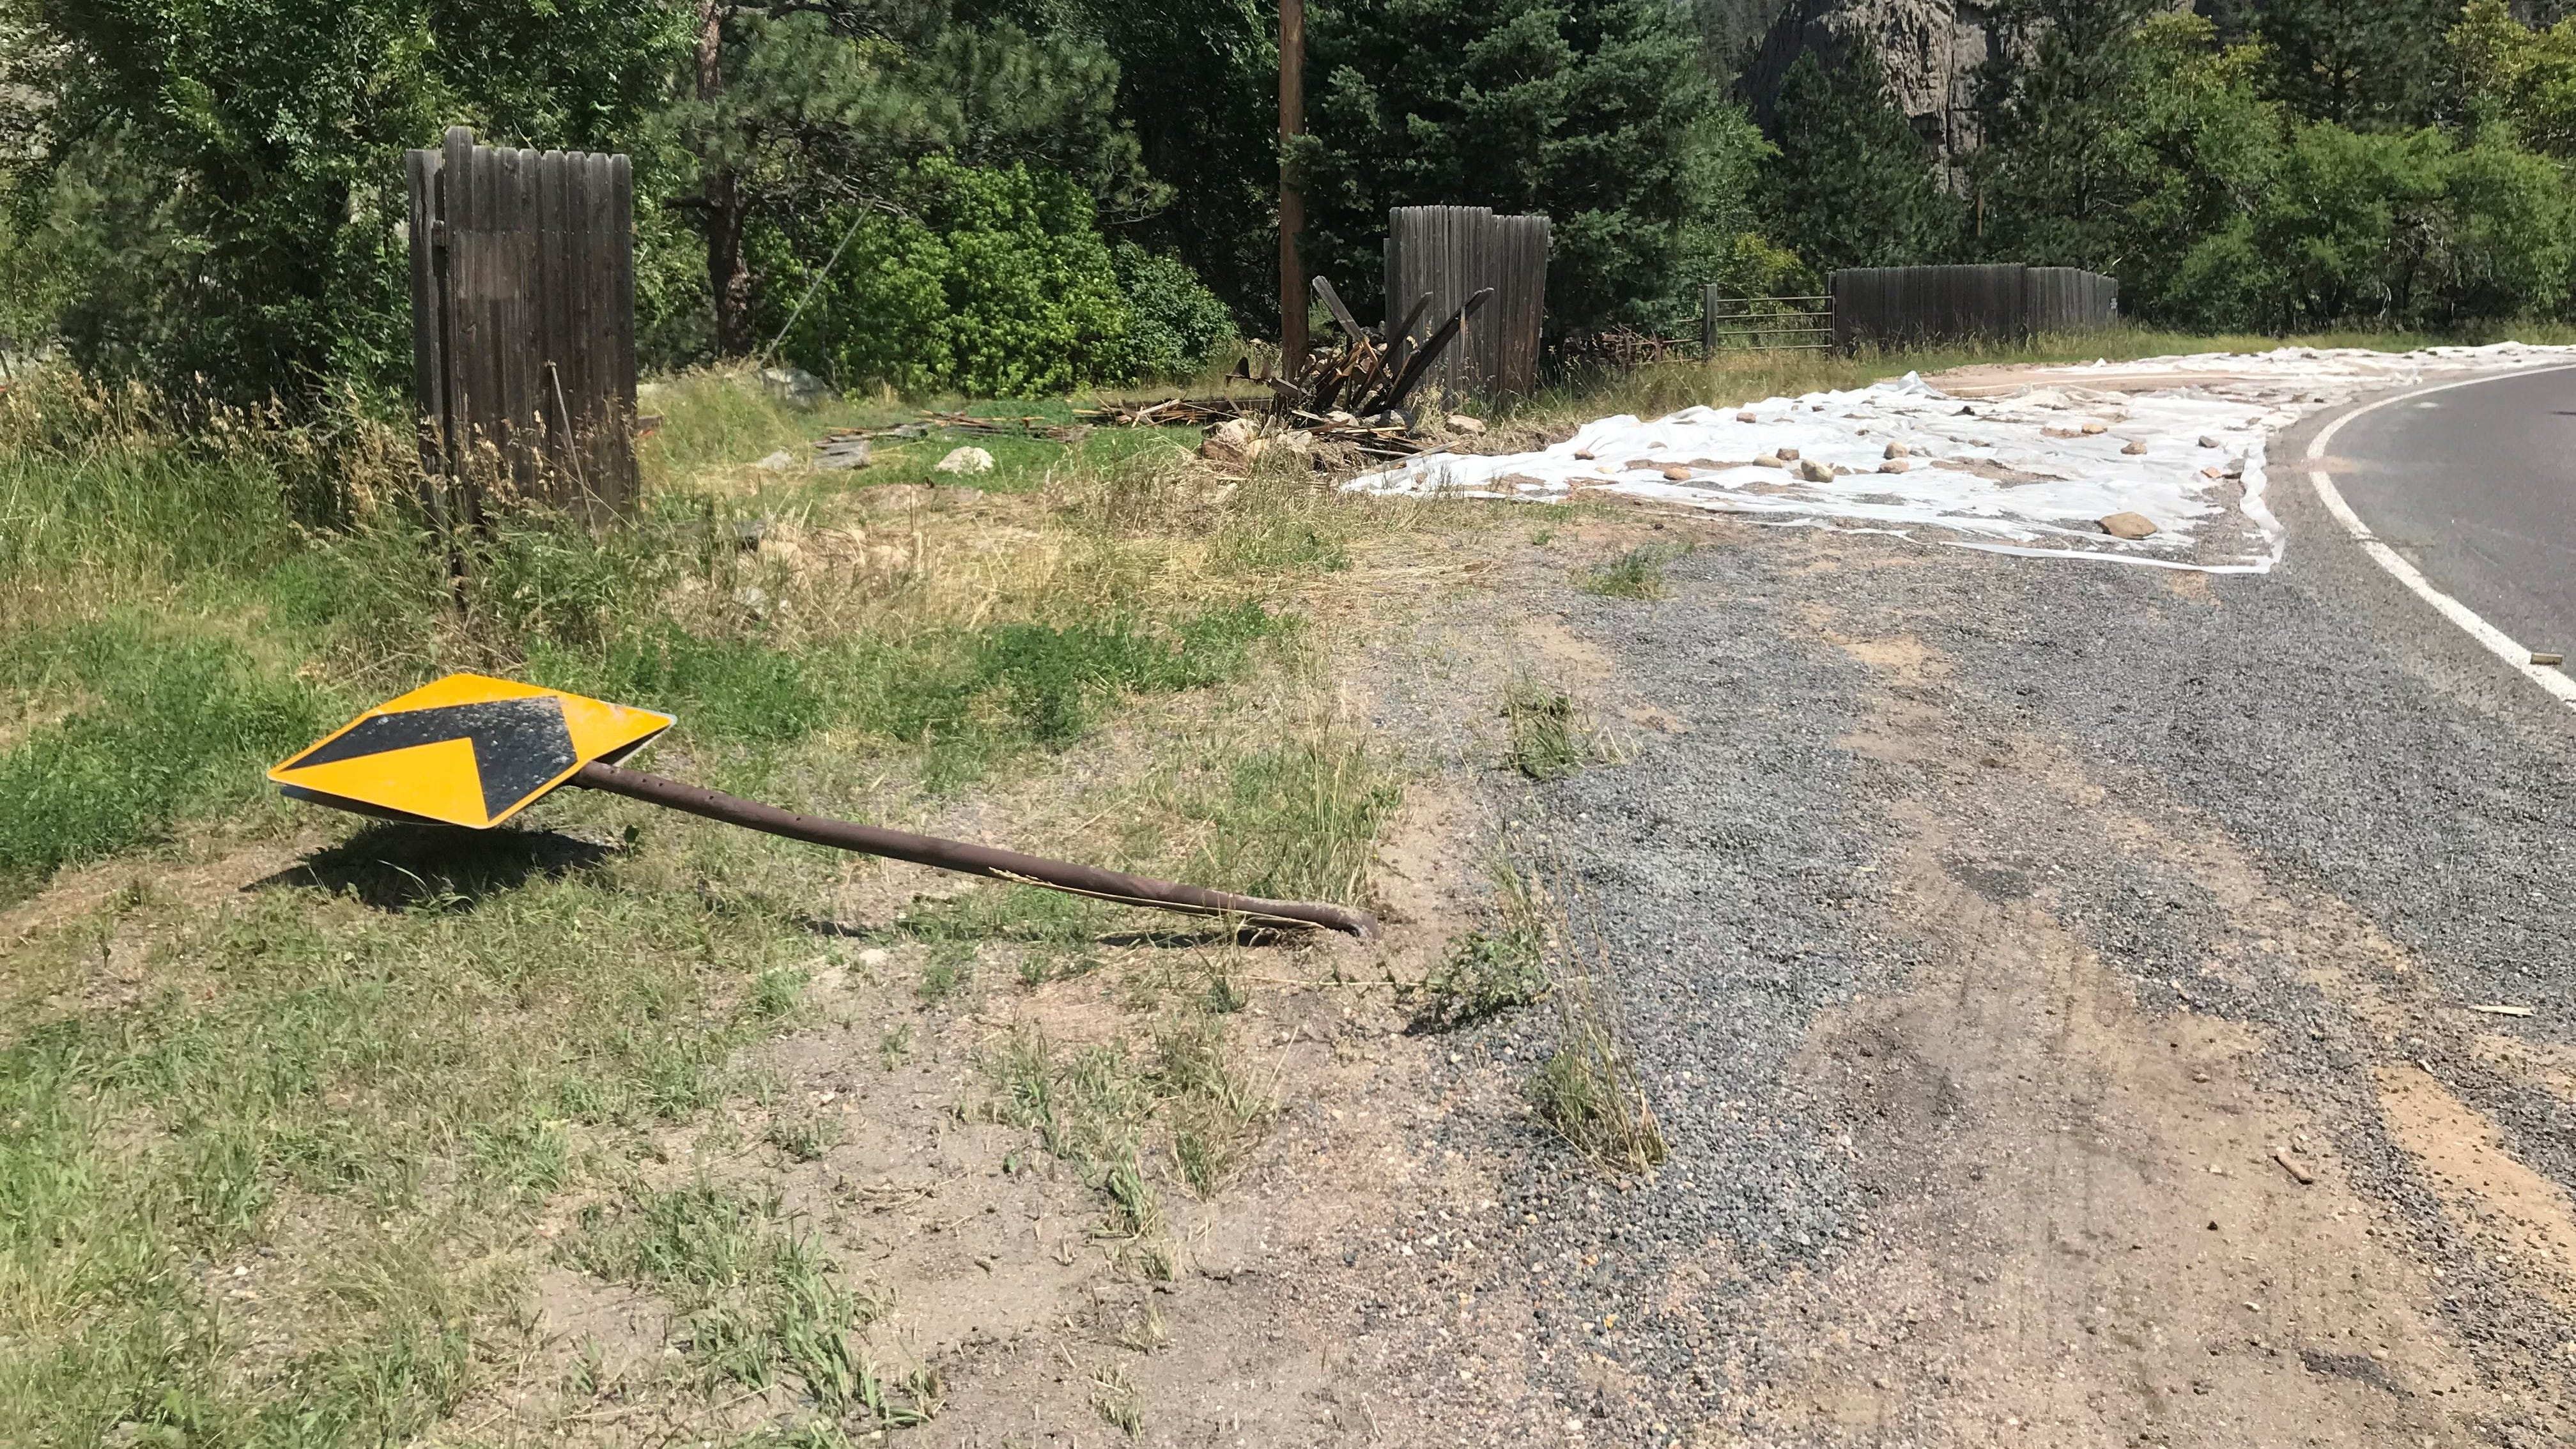 Report: Truck spilled hundreds of gallons of fracking flowback fluid in Poudre Canyon